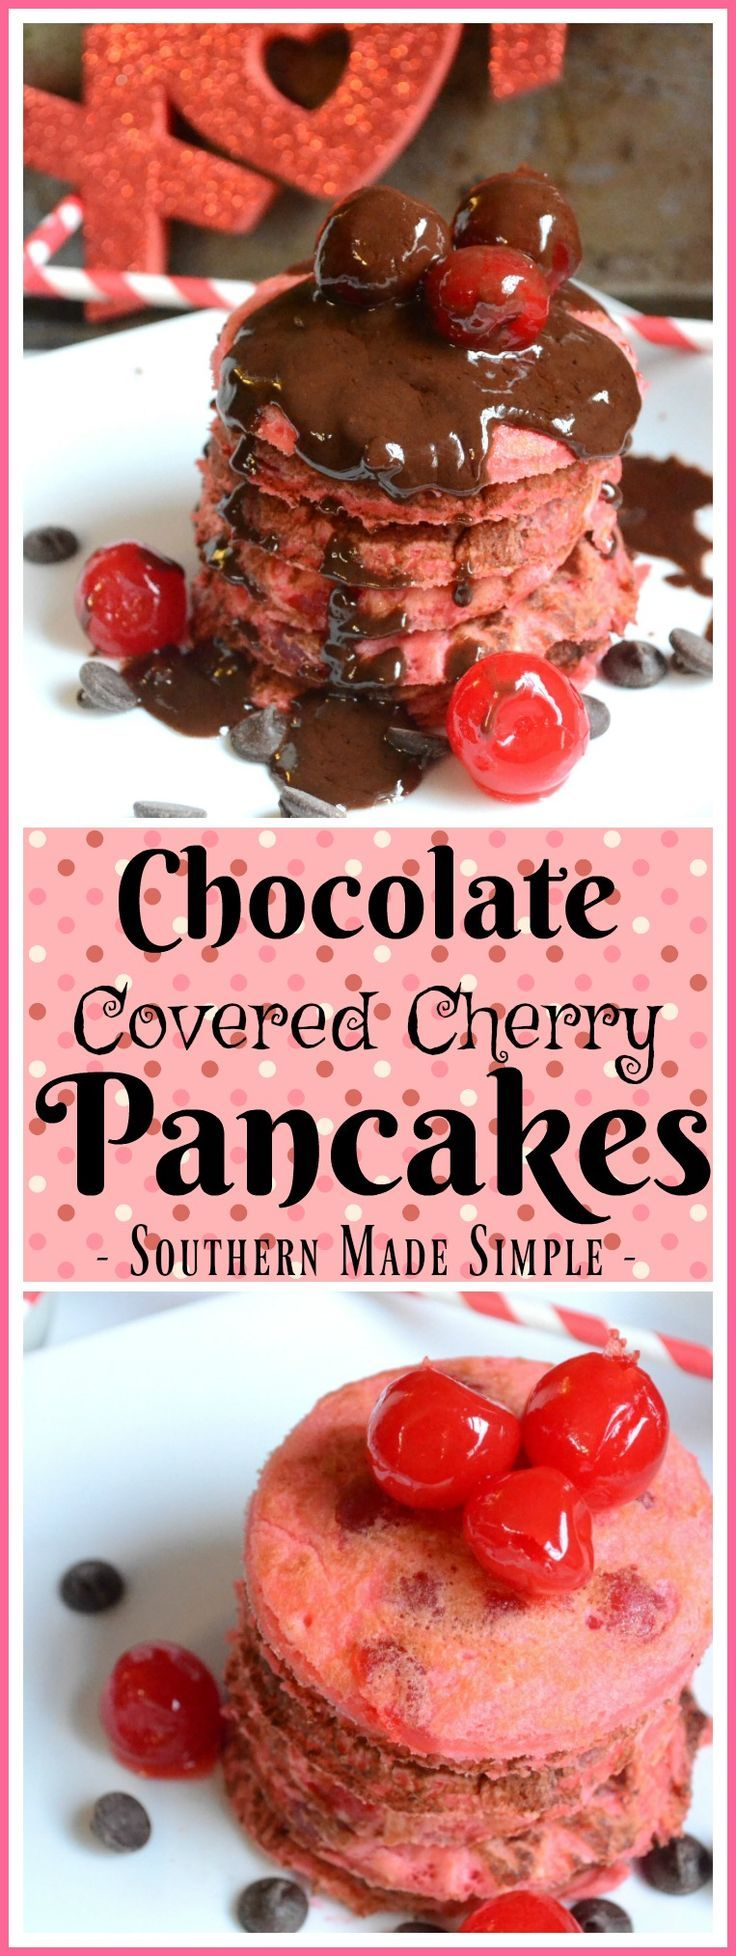 These chocolate covered cherry pancakes smothered in a creamy chocolate ganache are the PERFECT way to share a little love with others on Valentine's Day this year!